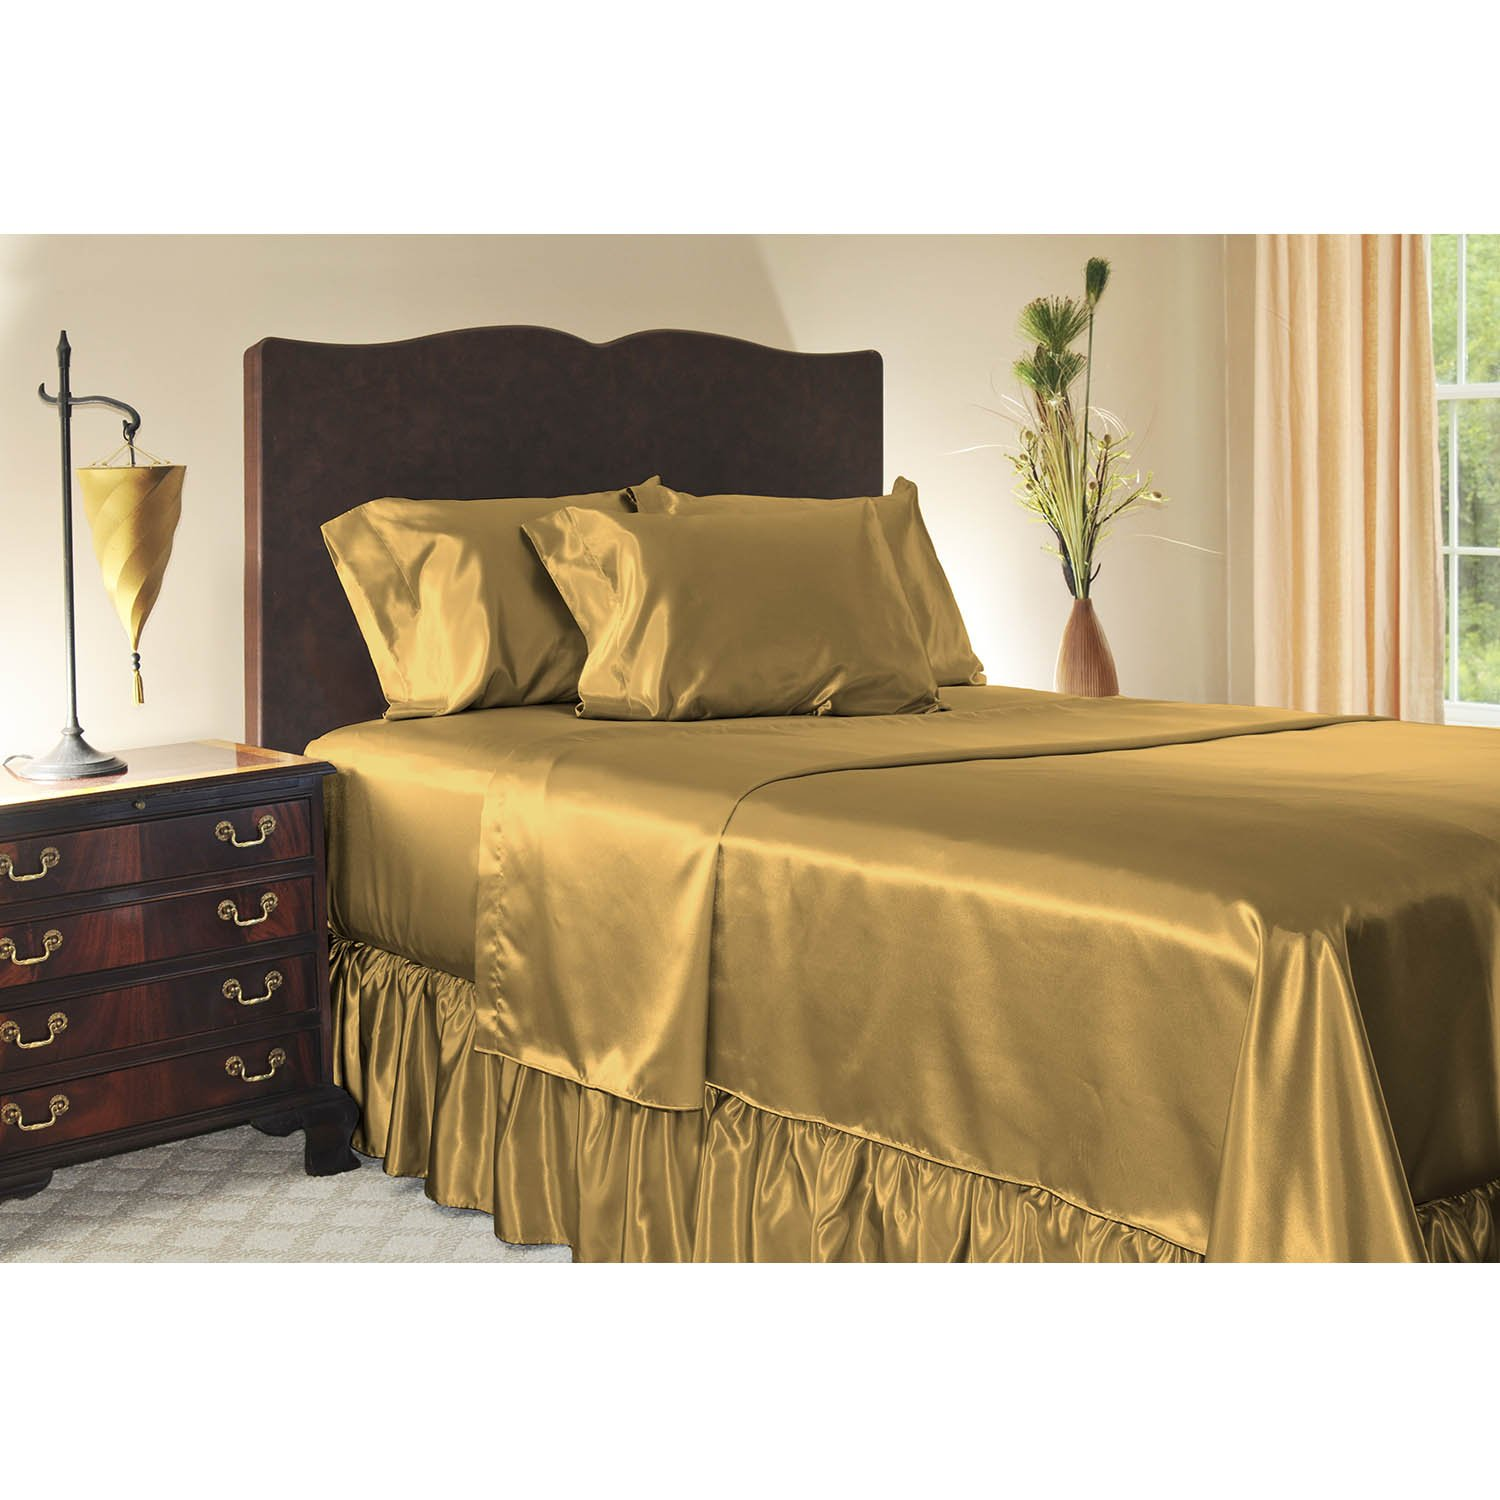 Luxury King Size Satin Flat Sheet - Gold by Shop Bedding